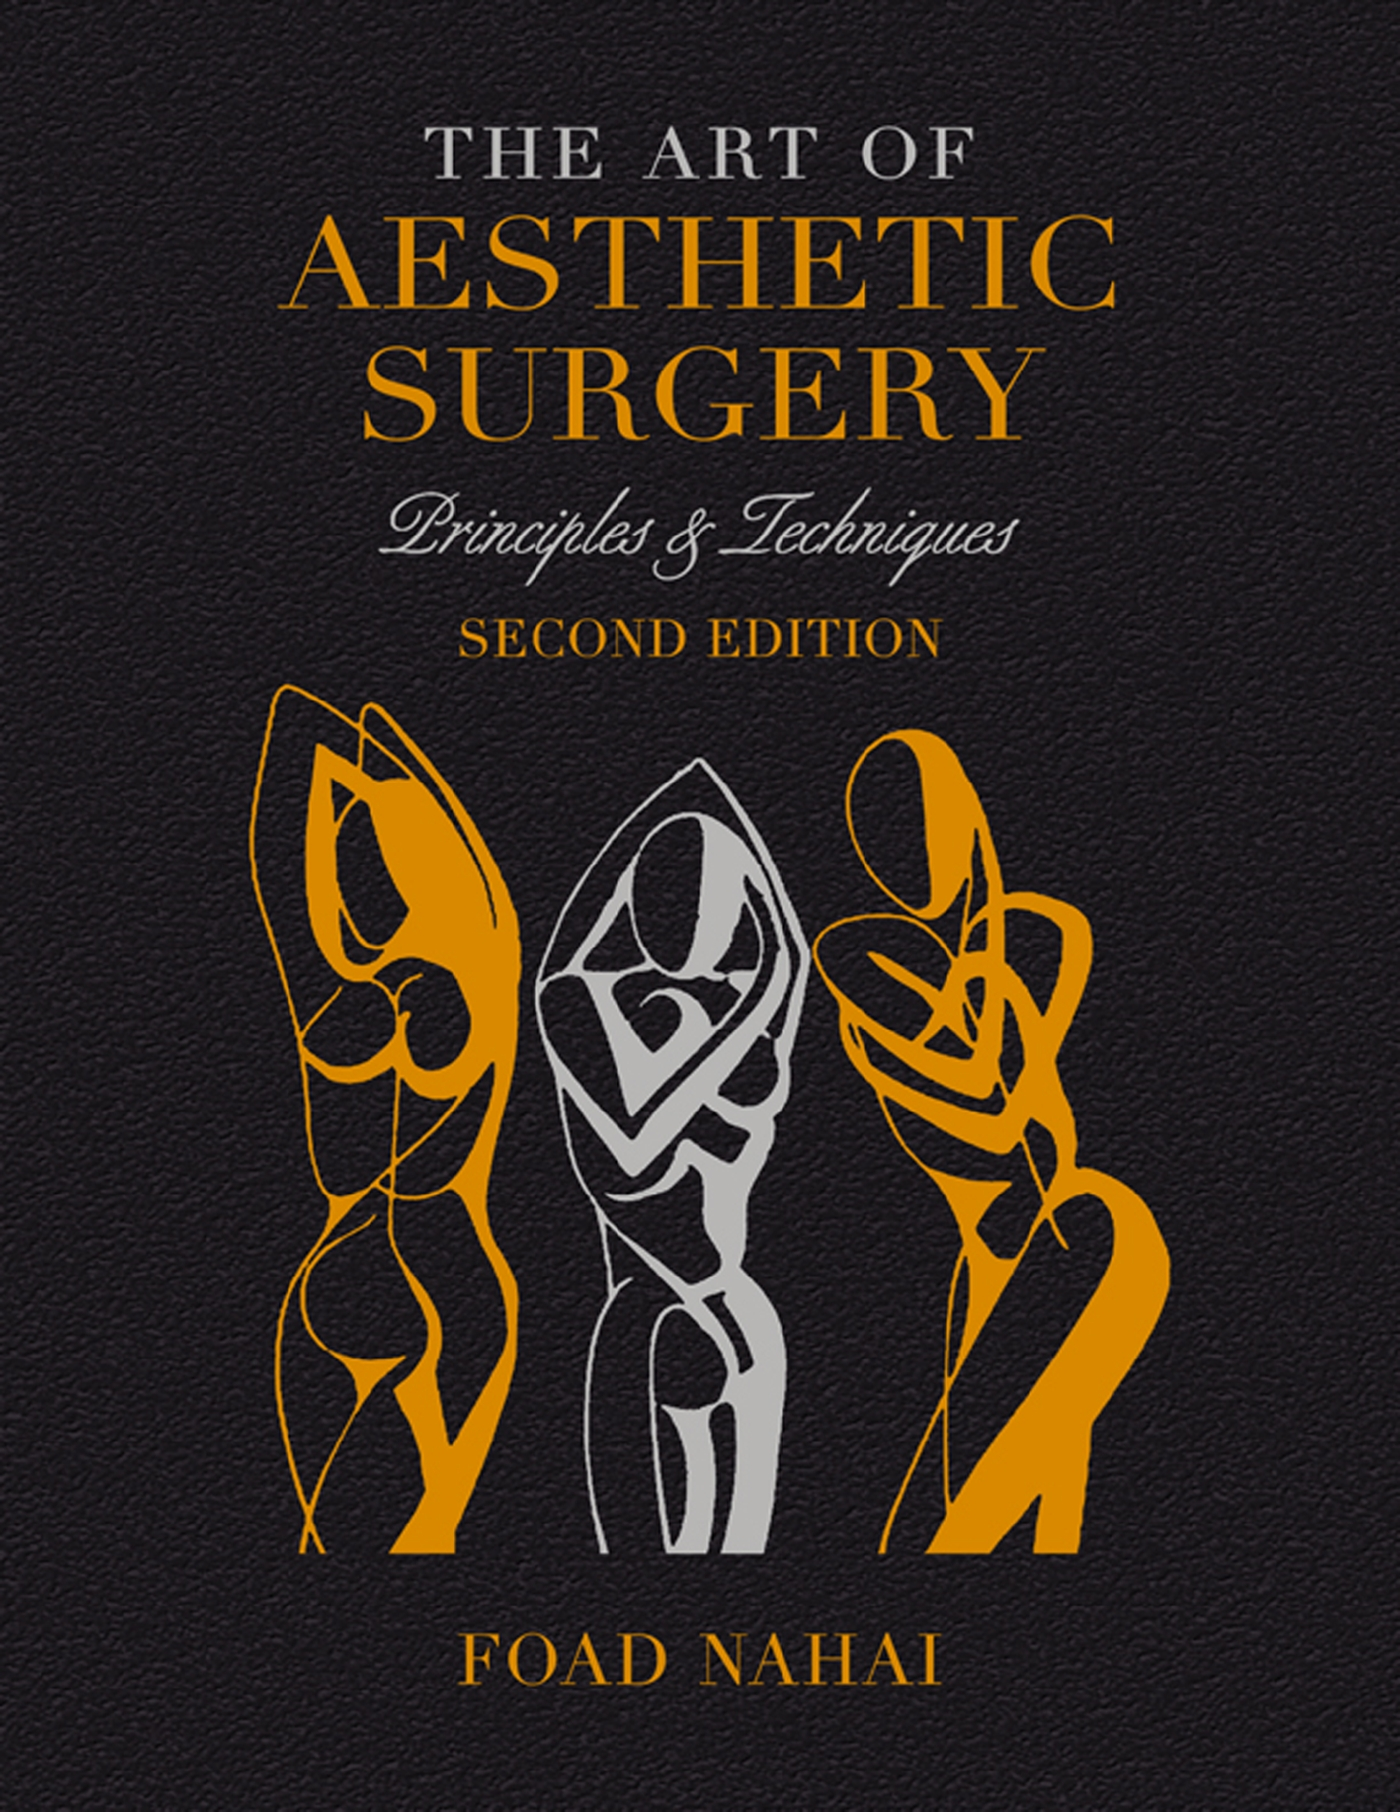 The Art of Aesthetic Surgery: Fundamentals and Minimally Invasive Surgery - Volume 1, Second Edition